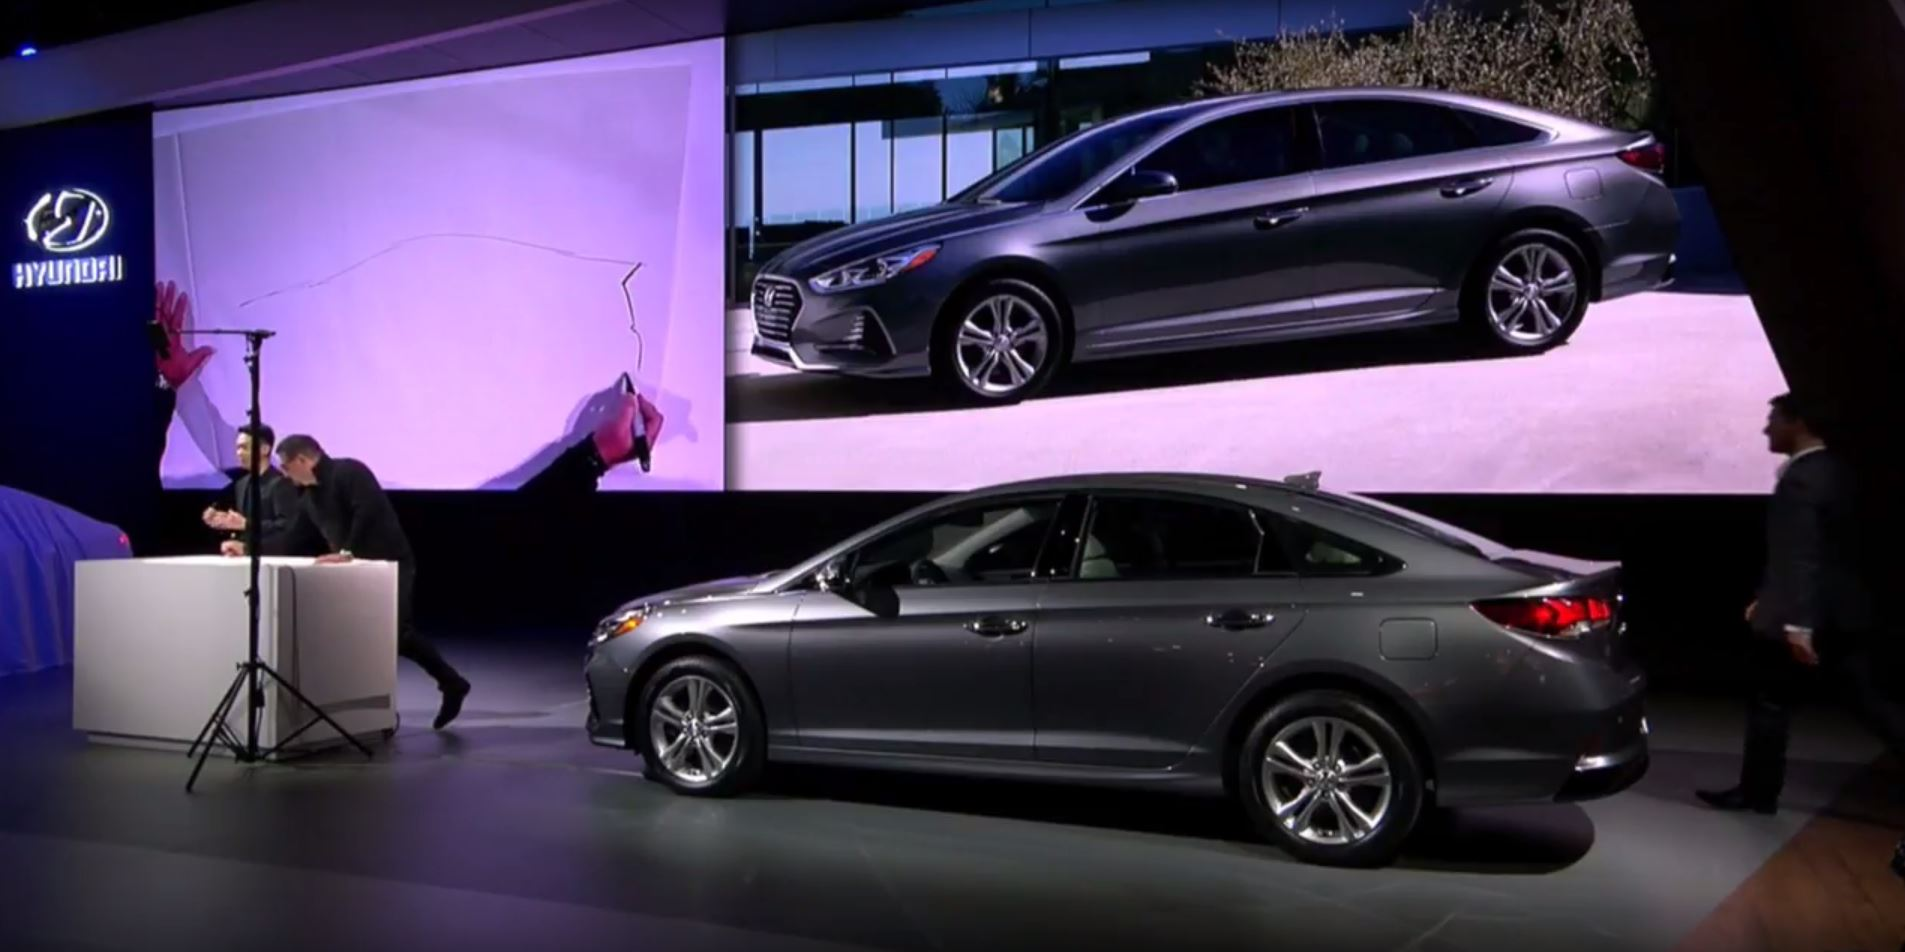 2018 hyundai sonata. wonderful sonata 2018 hyundai sonata sedan car reveal at 2017 new york international auto  show model redesign presentation intended hyundai sonata